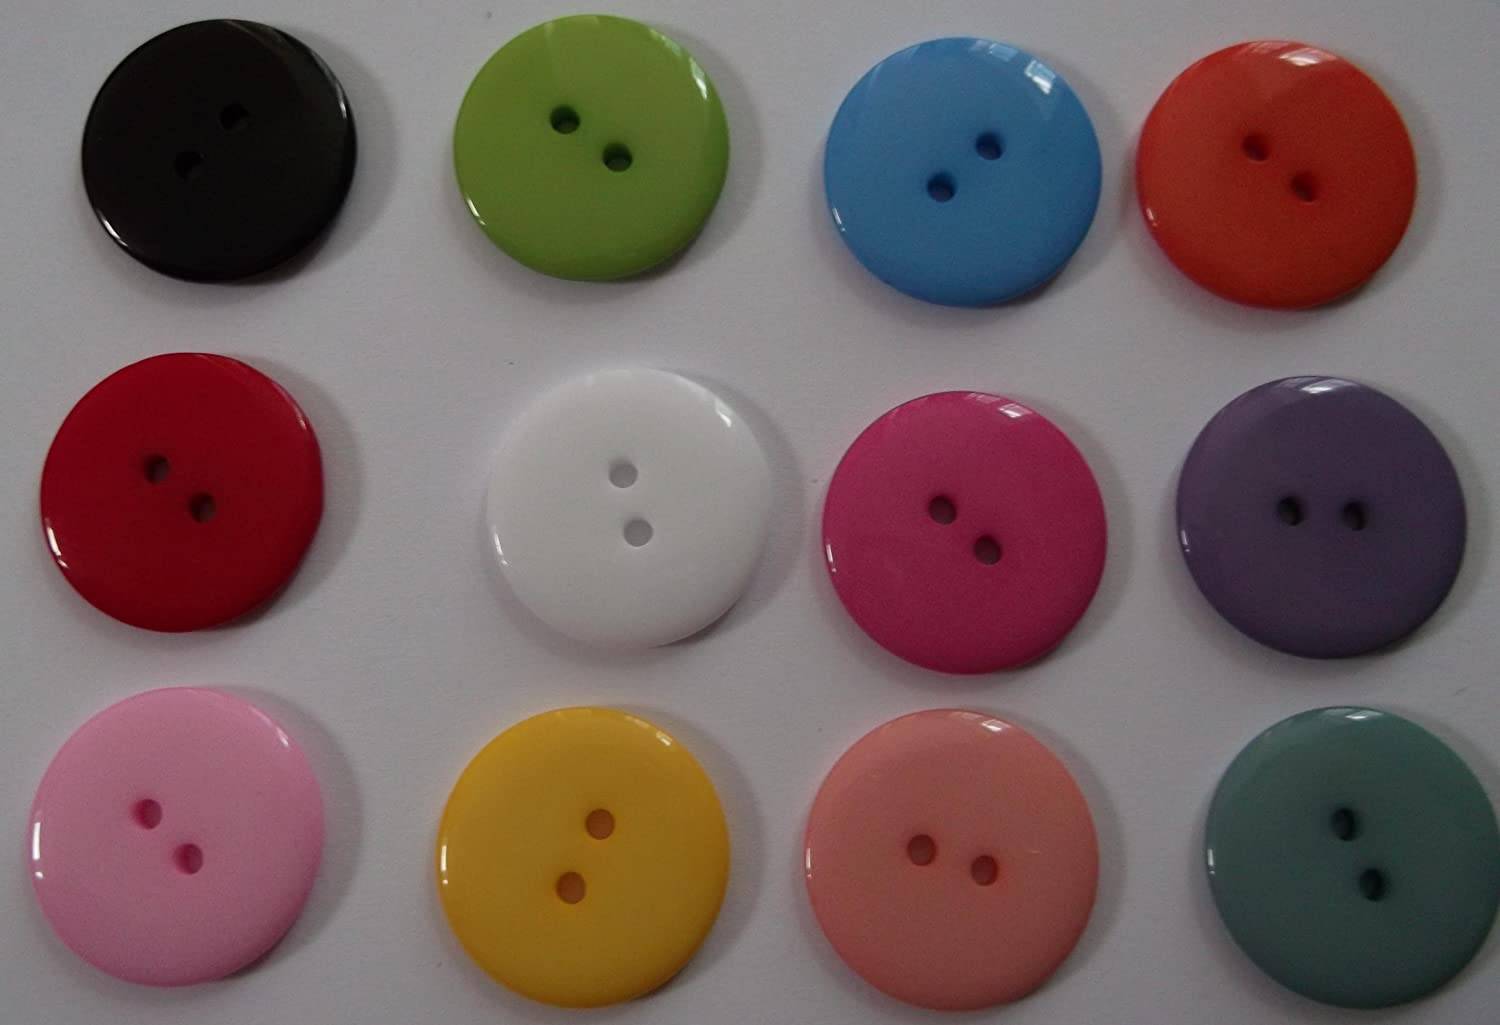 25 x Large 23mm Plain Round Resin Sewing Buttons for Knitting, Arts, Crafts and Clothes (Black) HOUSWEETY